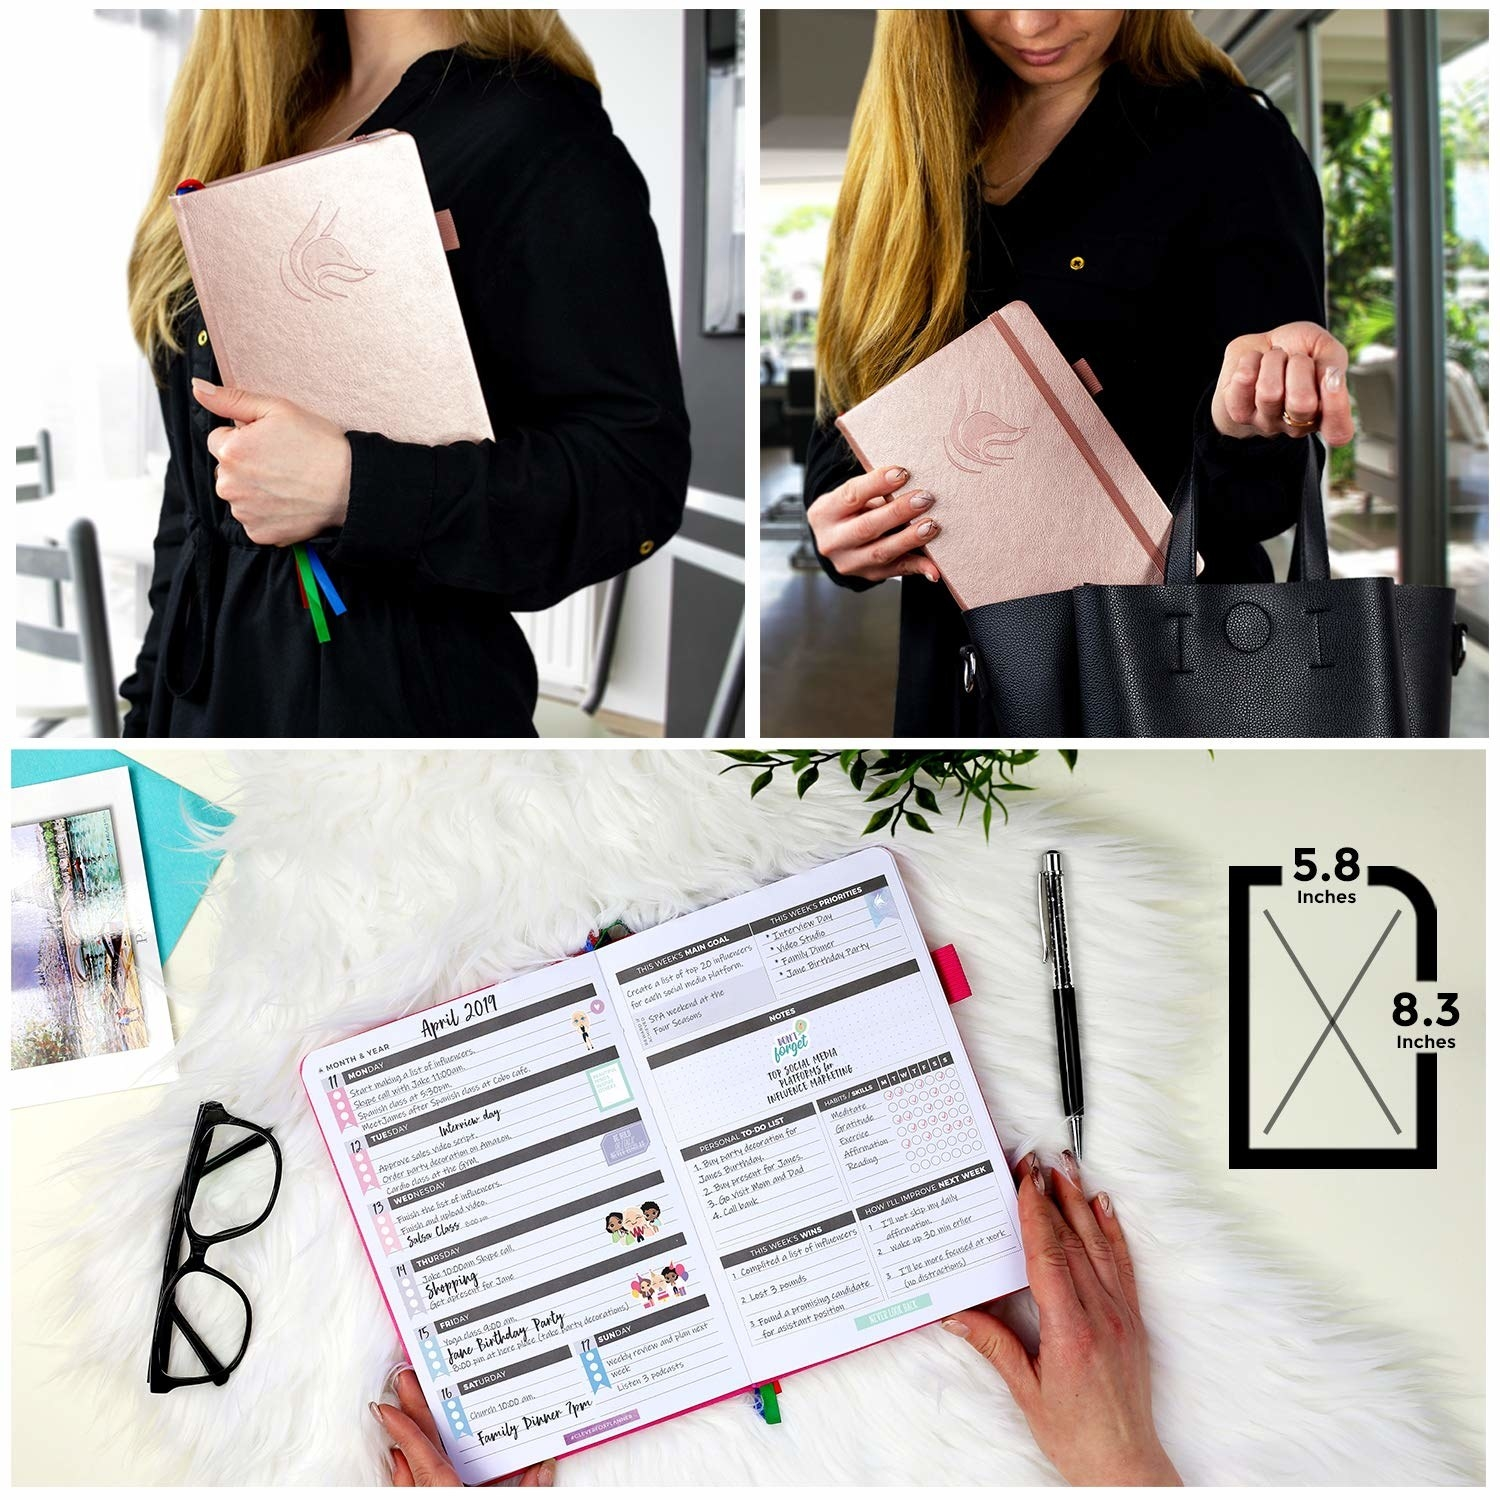 A model carrying the rose gold planner, and holding it open to show the layout inside